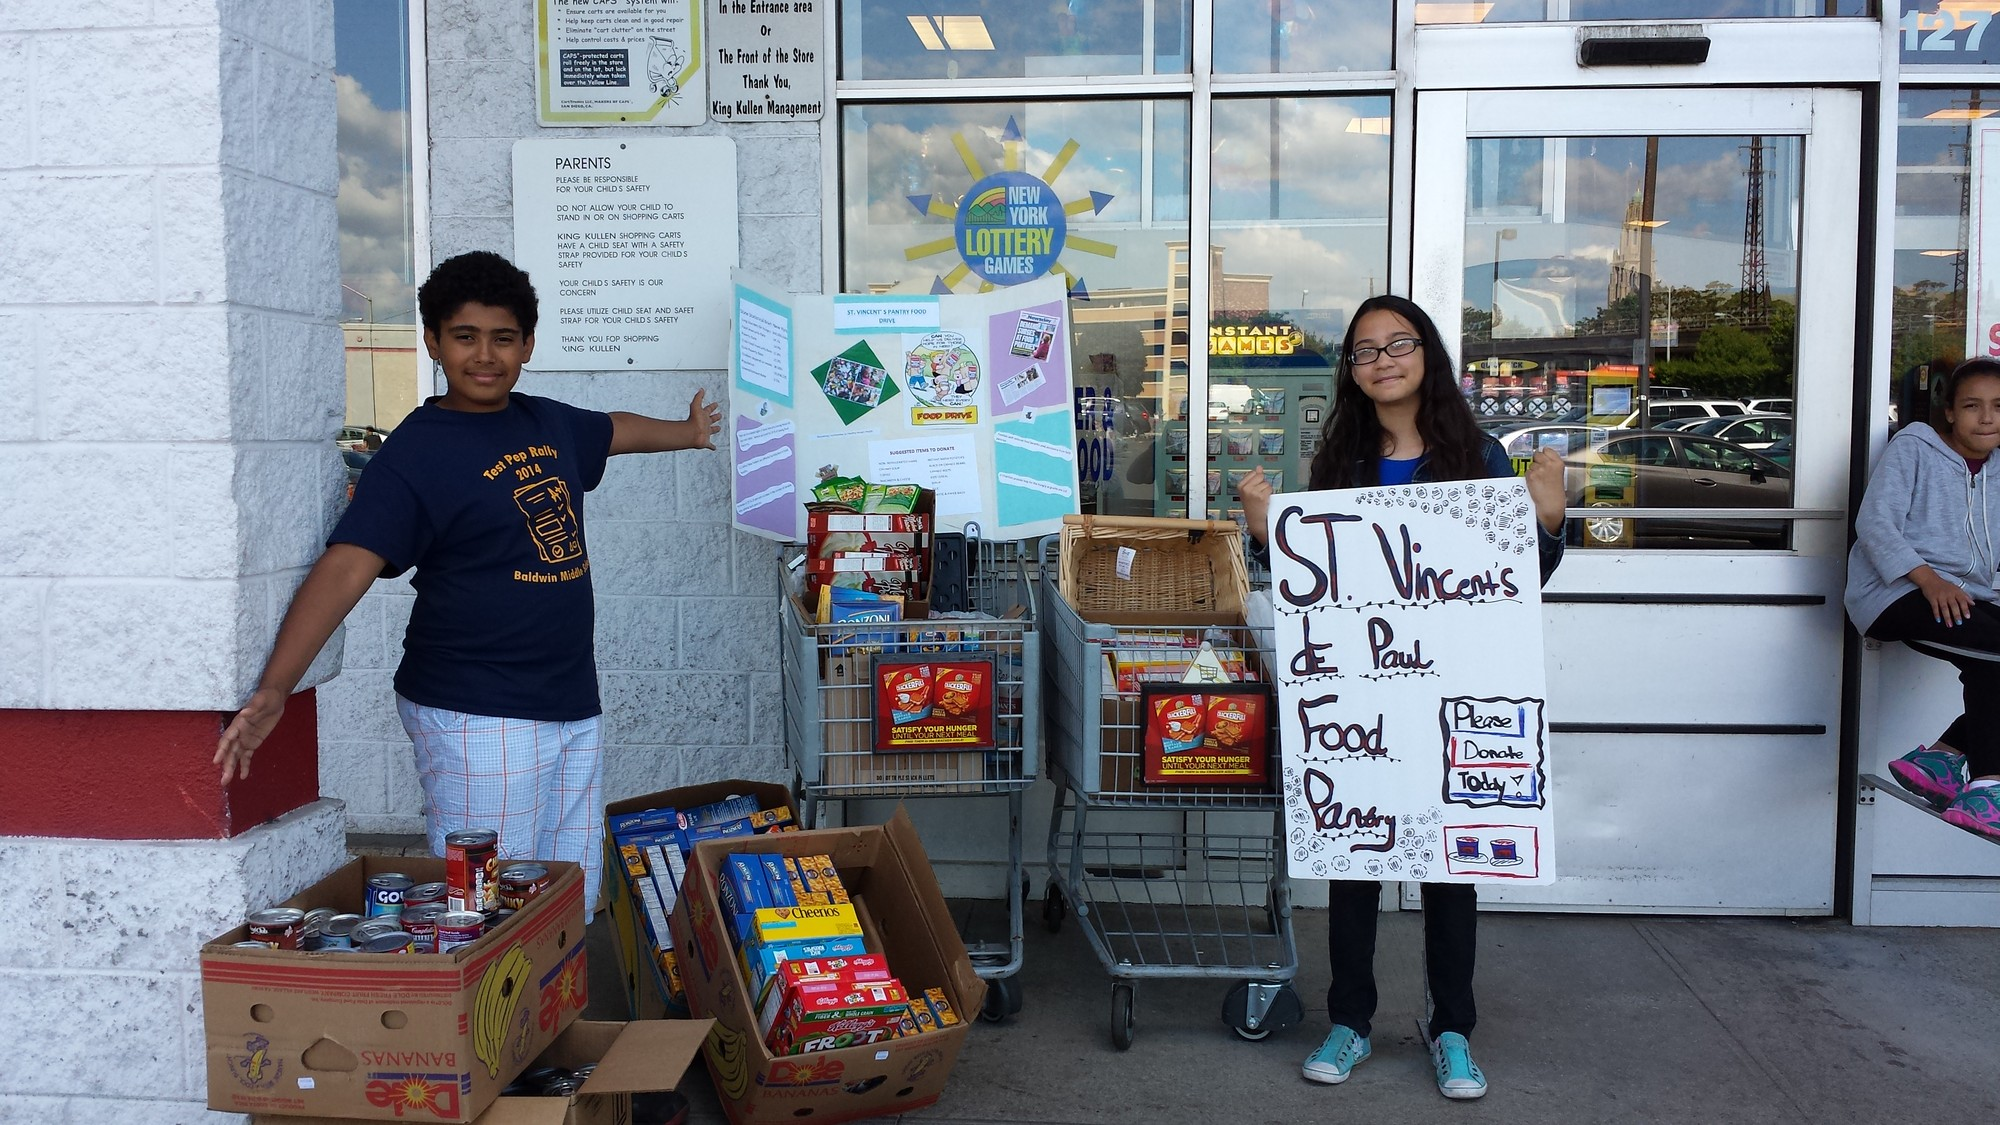 A successful food drive! 366 donations